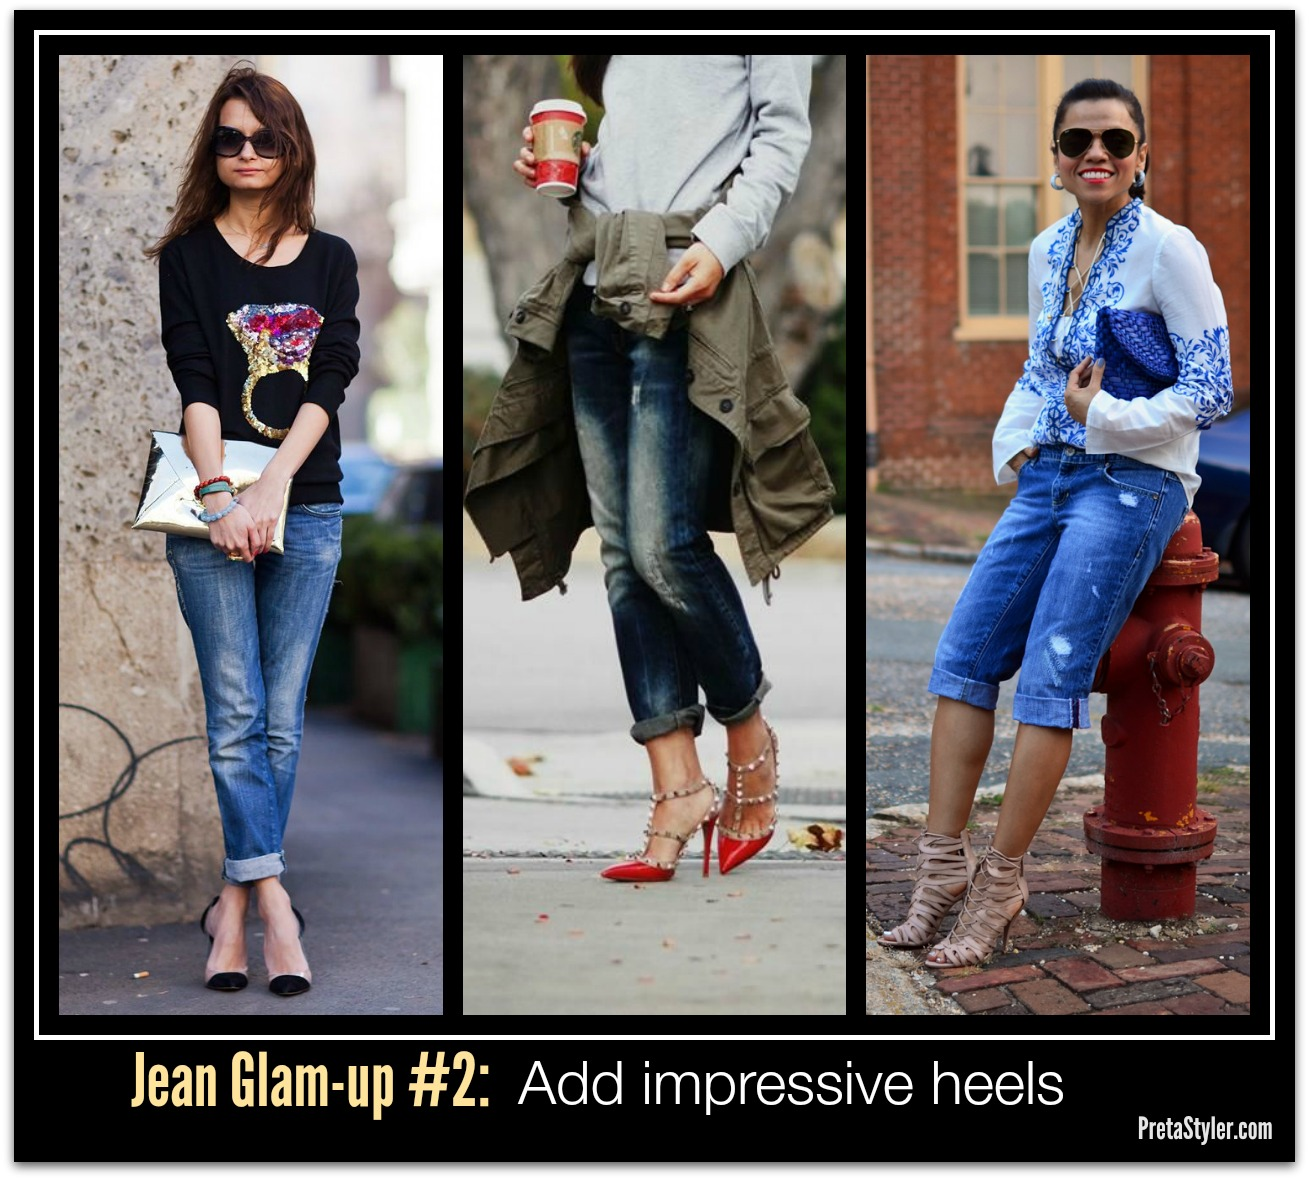 How to Glam-up Blue Jeans #2